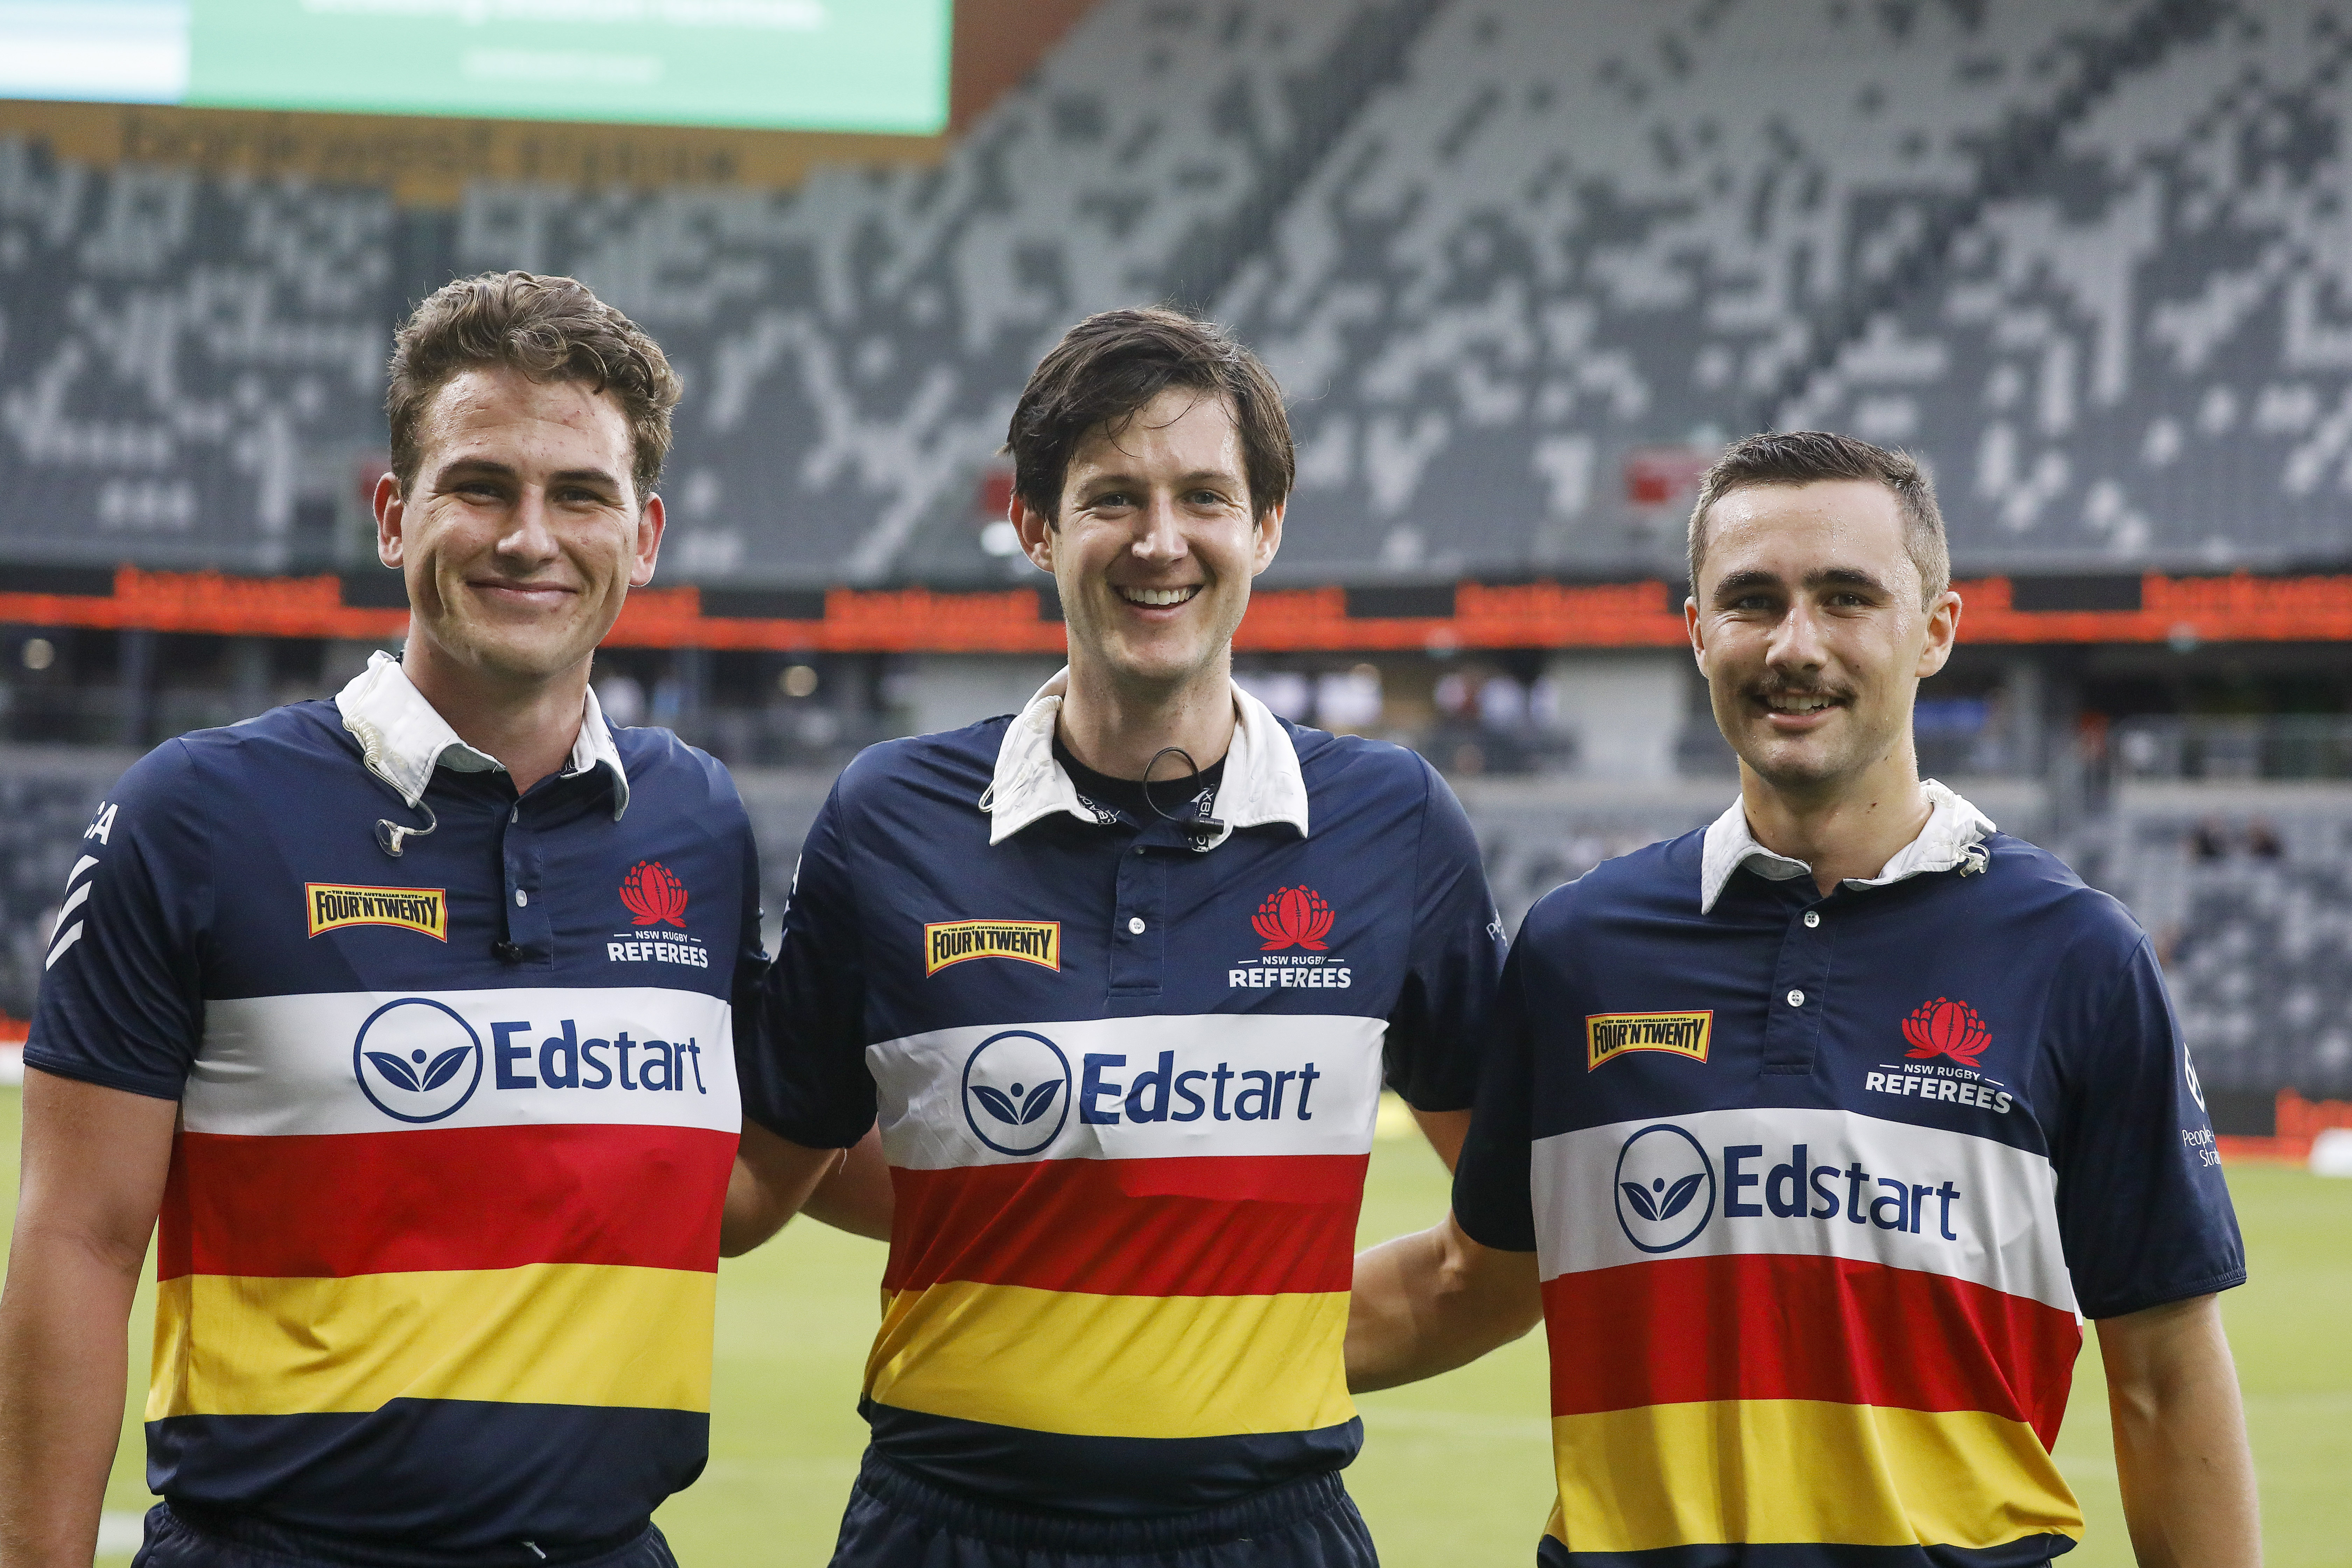 Edstart have extended their Major Partnership with NSWRU and across all the referee associations in metropolitan Sydney